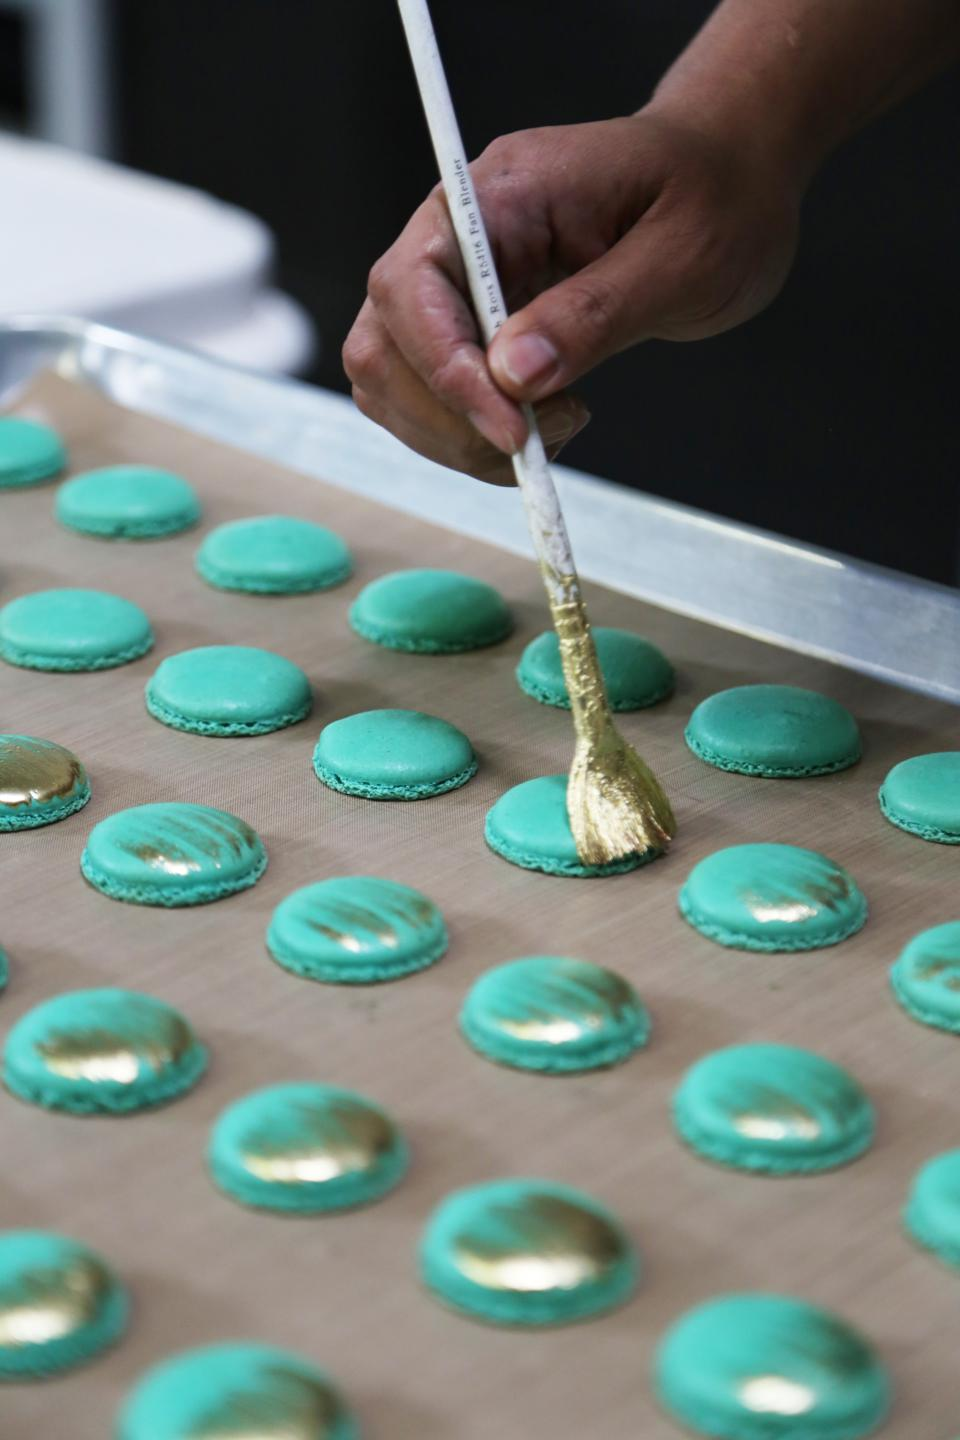 Hervé, Cannabiniers, luxury cannabis, gourmet edibles, cannabis-infused macarons